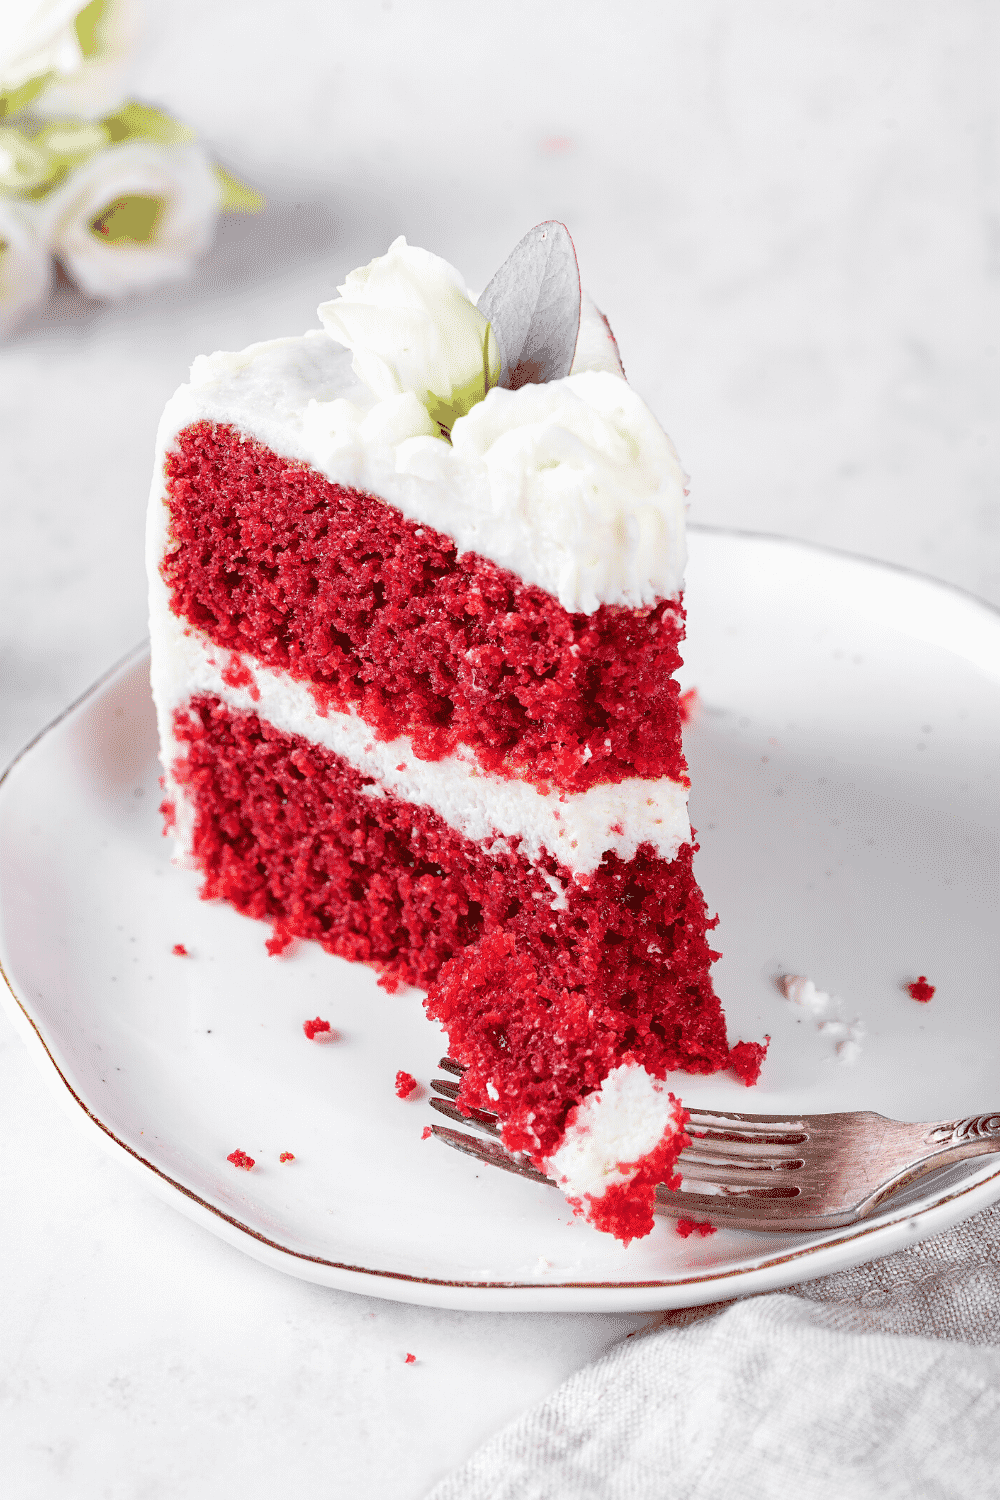 A piece of red velvet cake on a white plate. A fork is in front of the cake with a piece of cake on it.